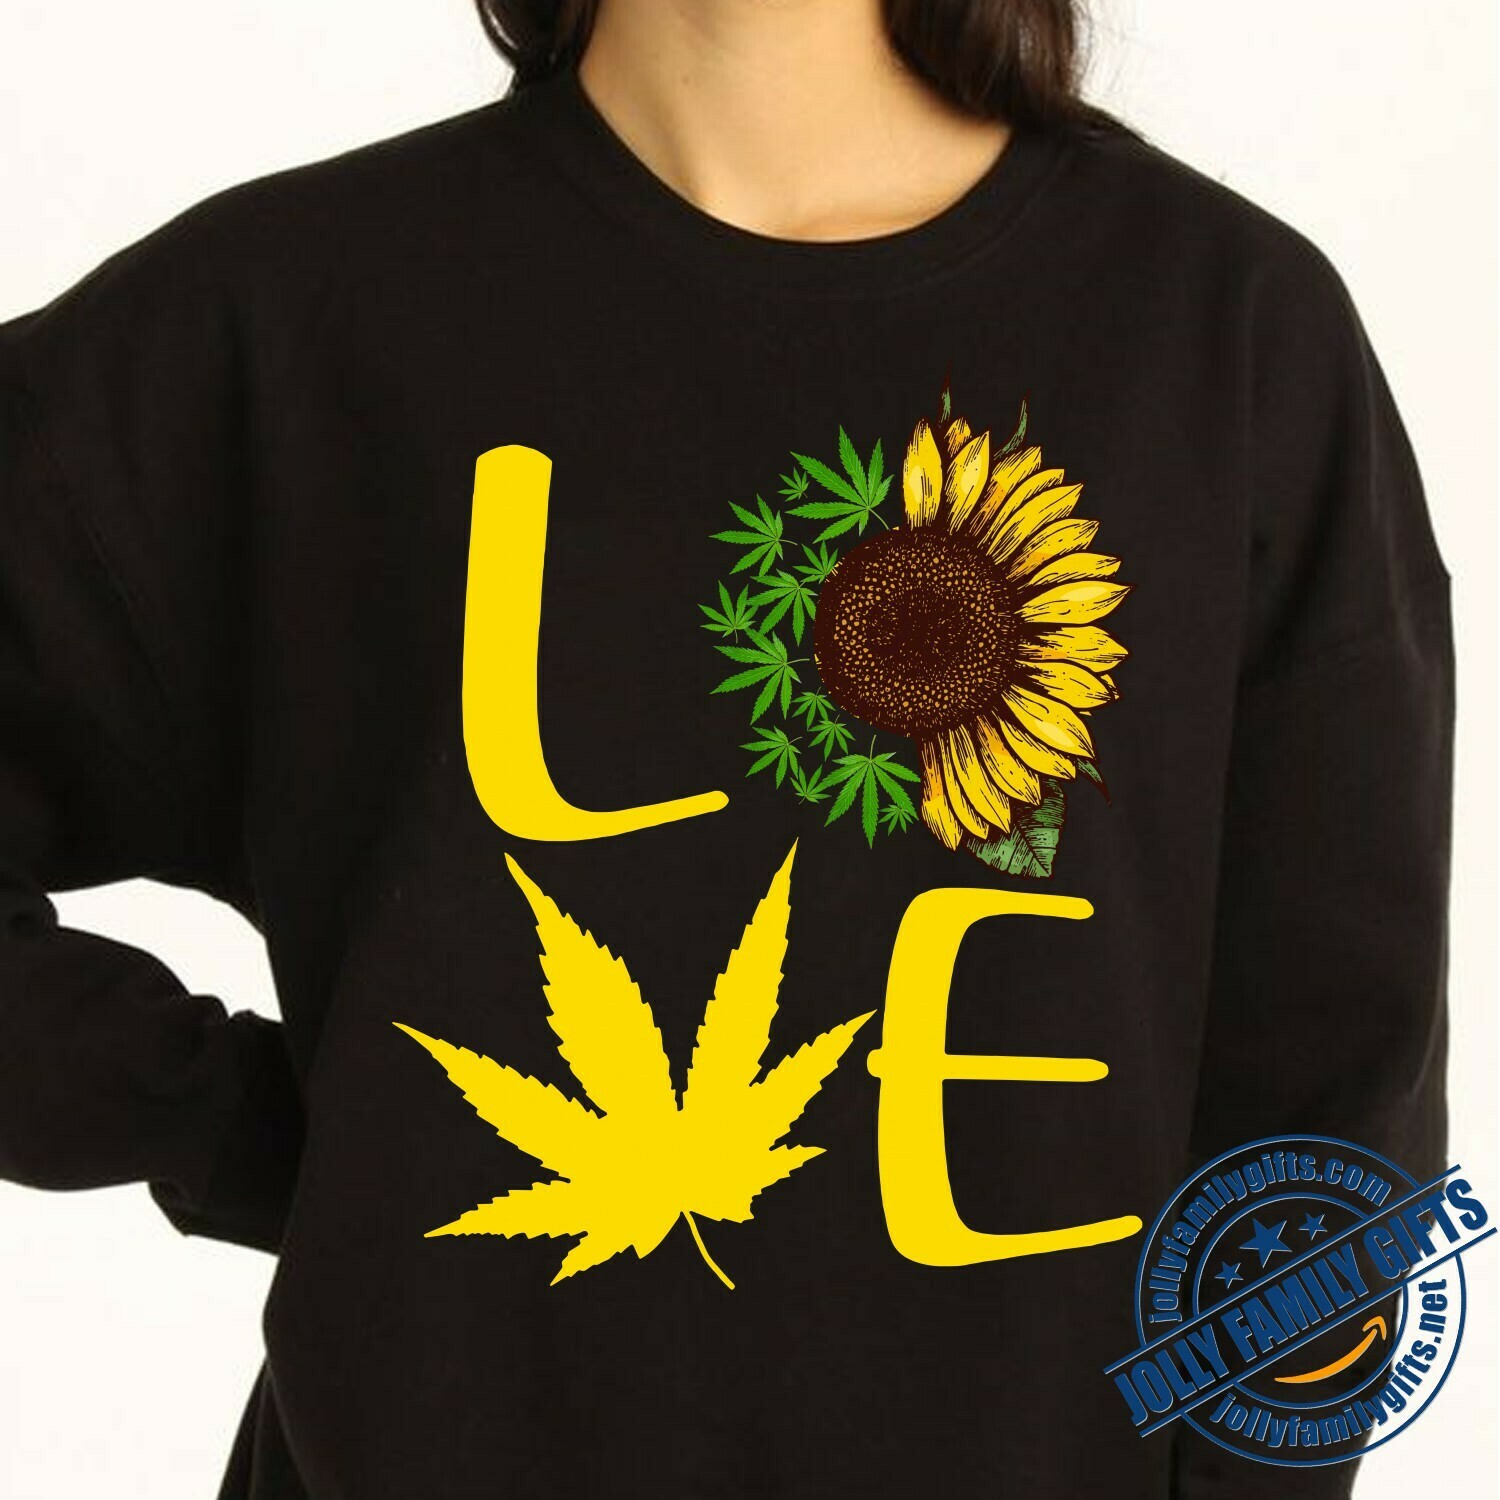 Sunflower Weed Cannabis Leaf Enthusiast marihuana love gift for Mens Womens T-Shirt Hoodie Sweatshirt Sweater Tee Kids Youth Gifts Jolly Family Gifts